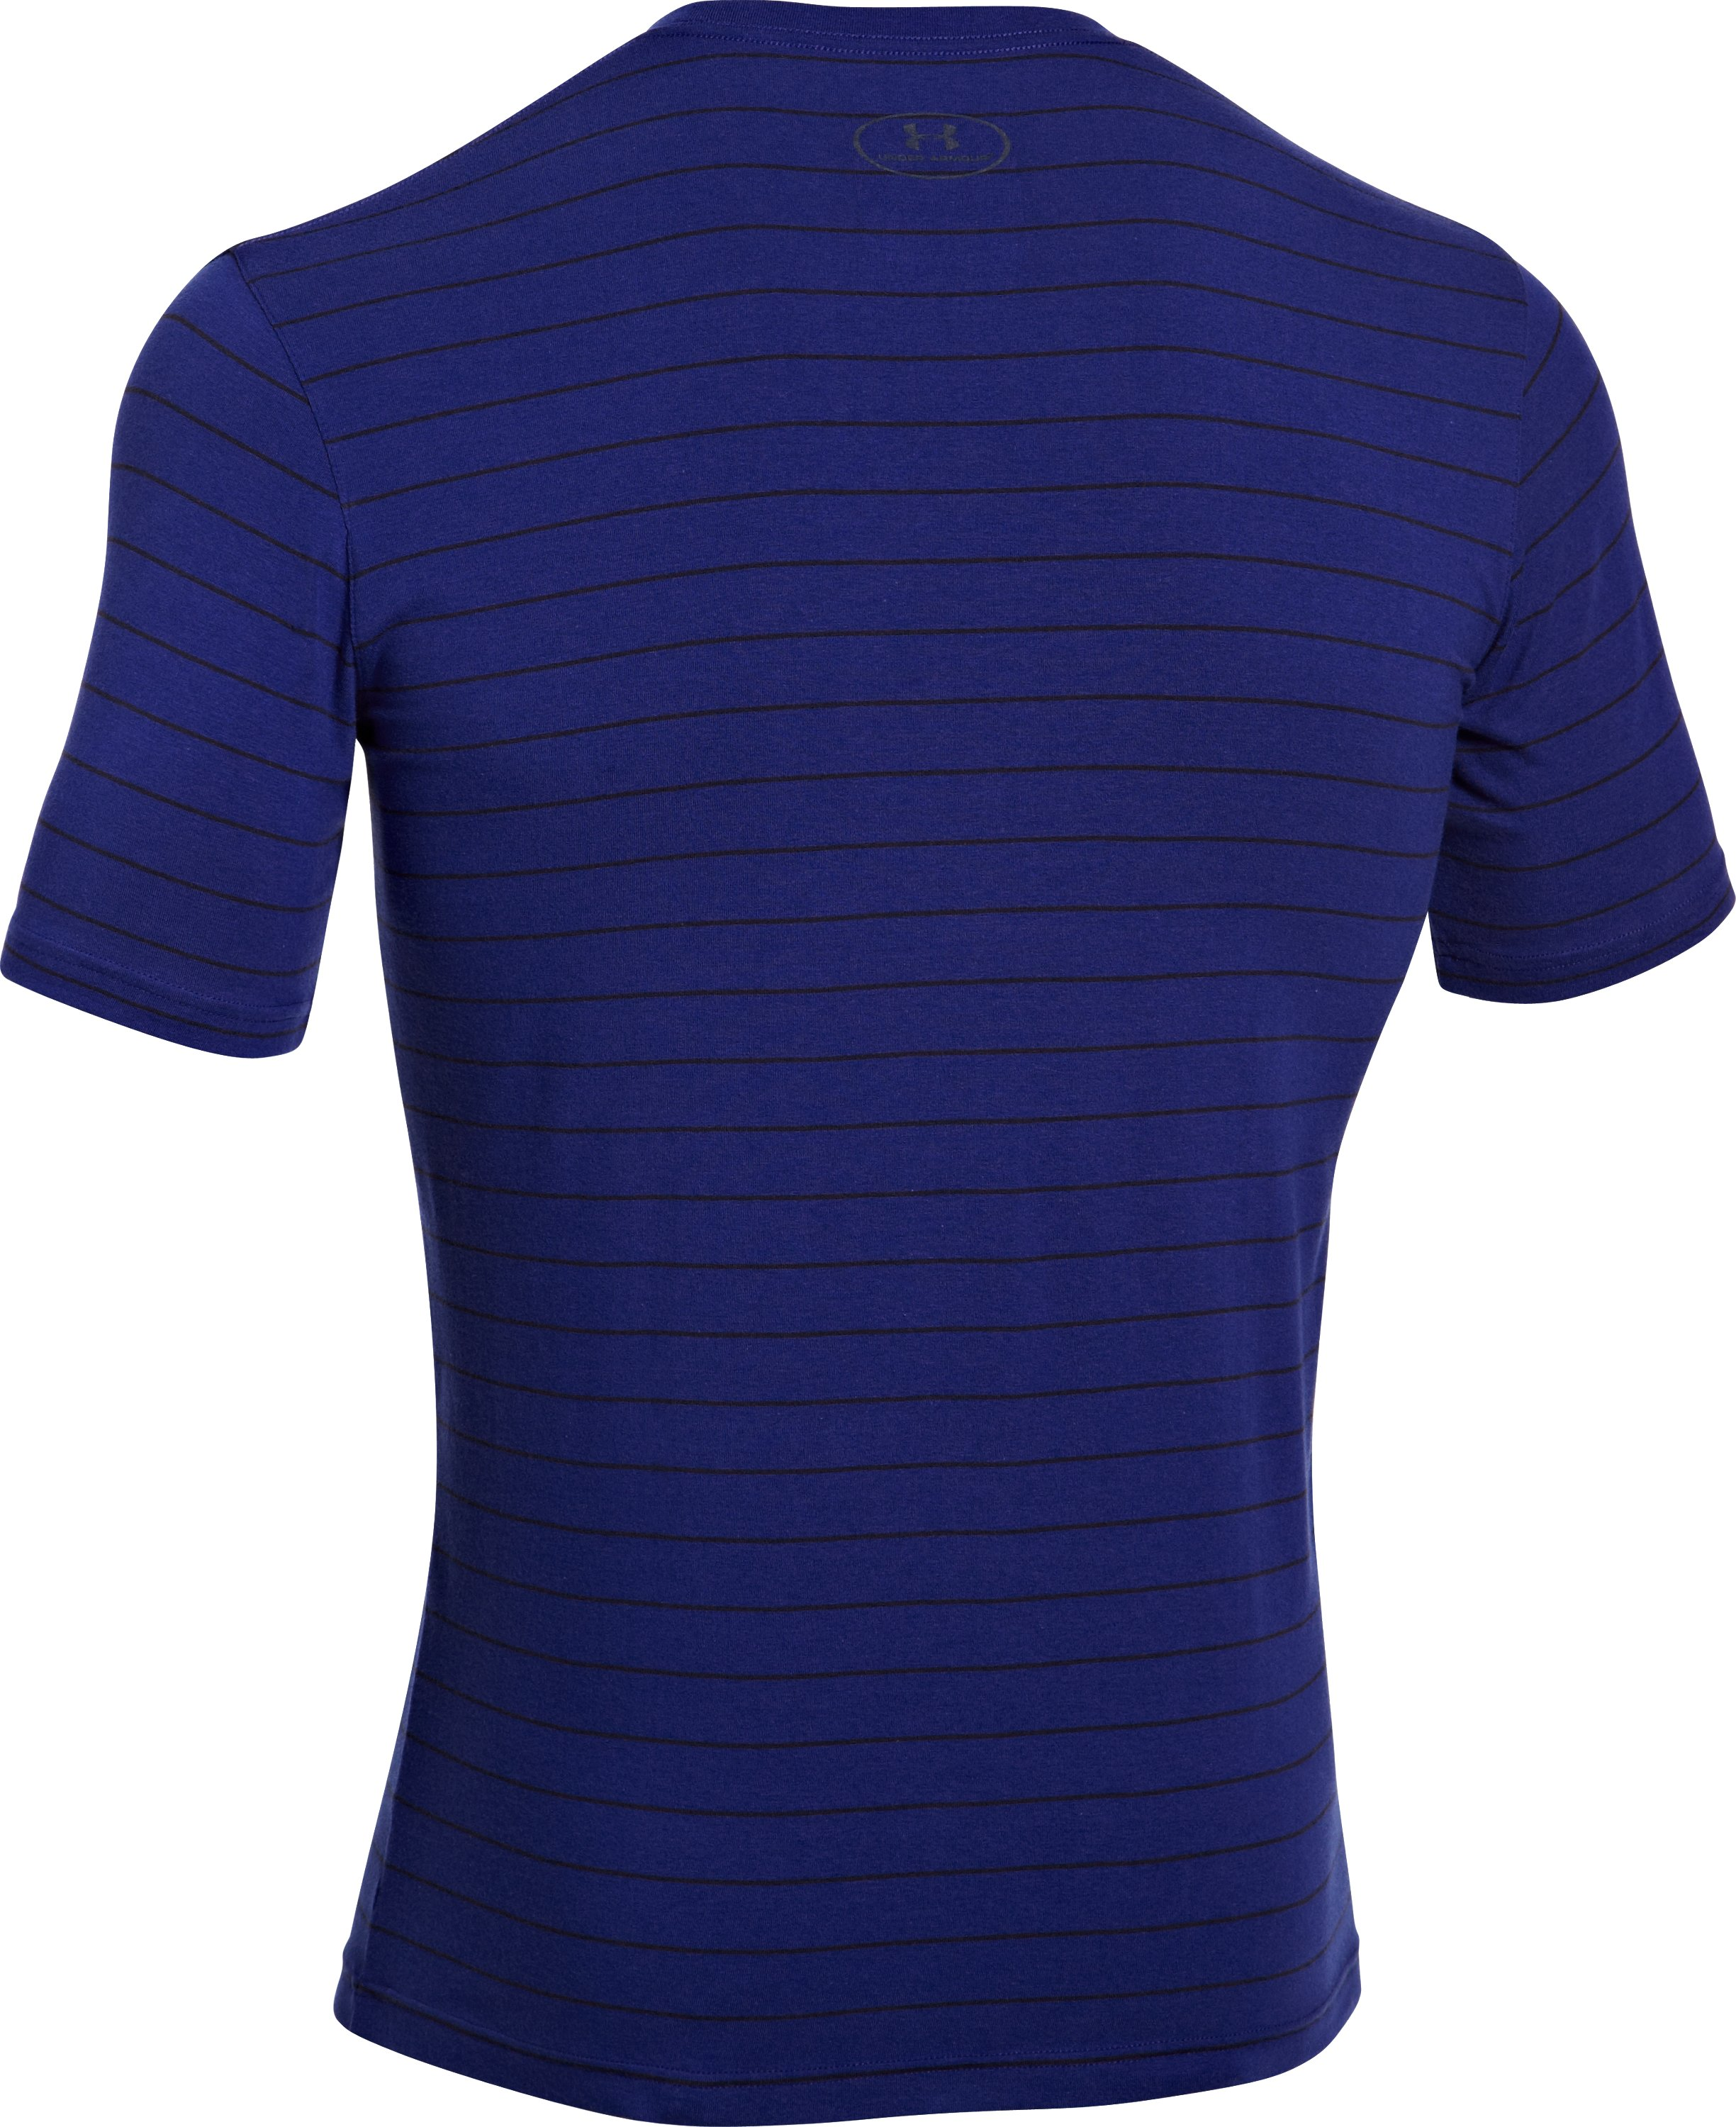 Men's Charged Cotton® Pinstripe T-Shirt, Caspian